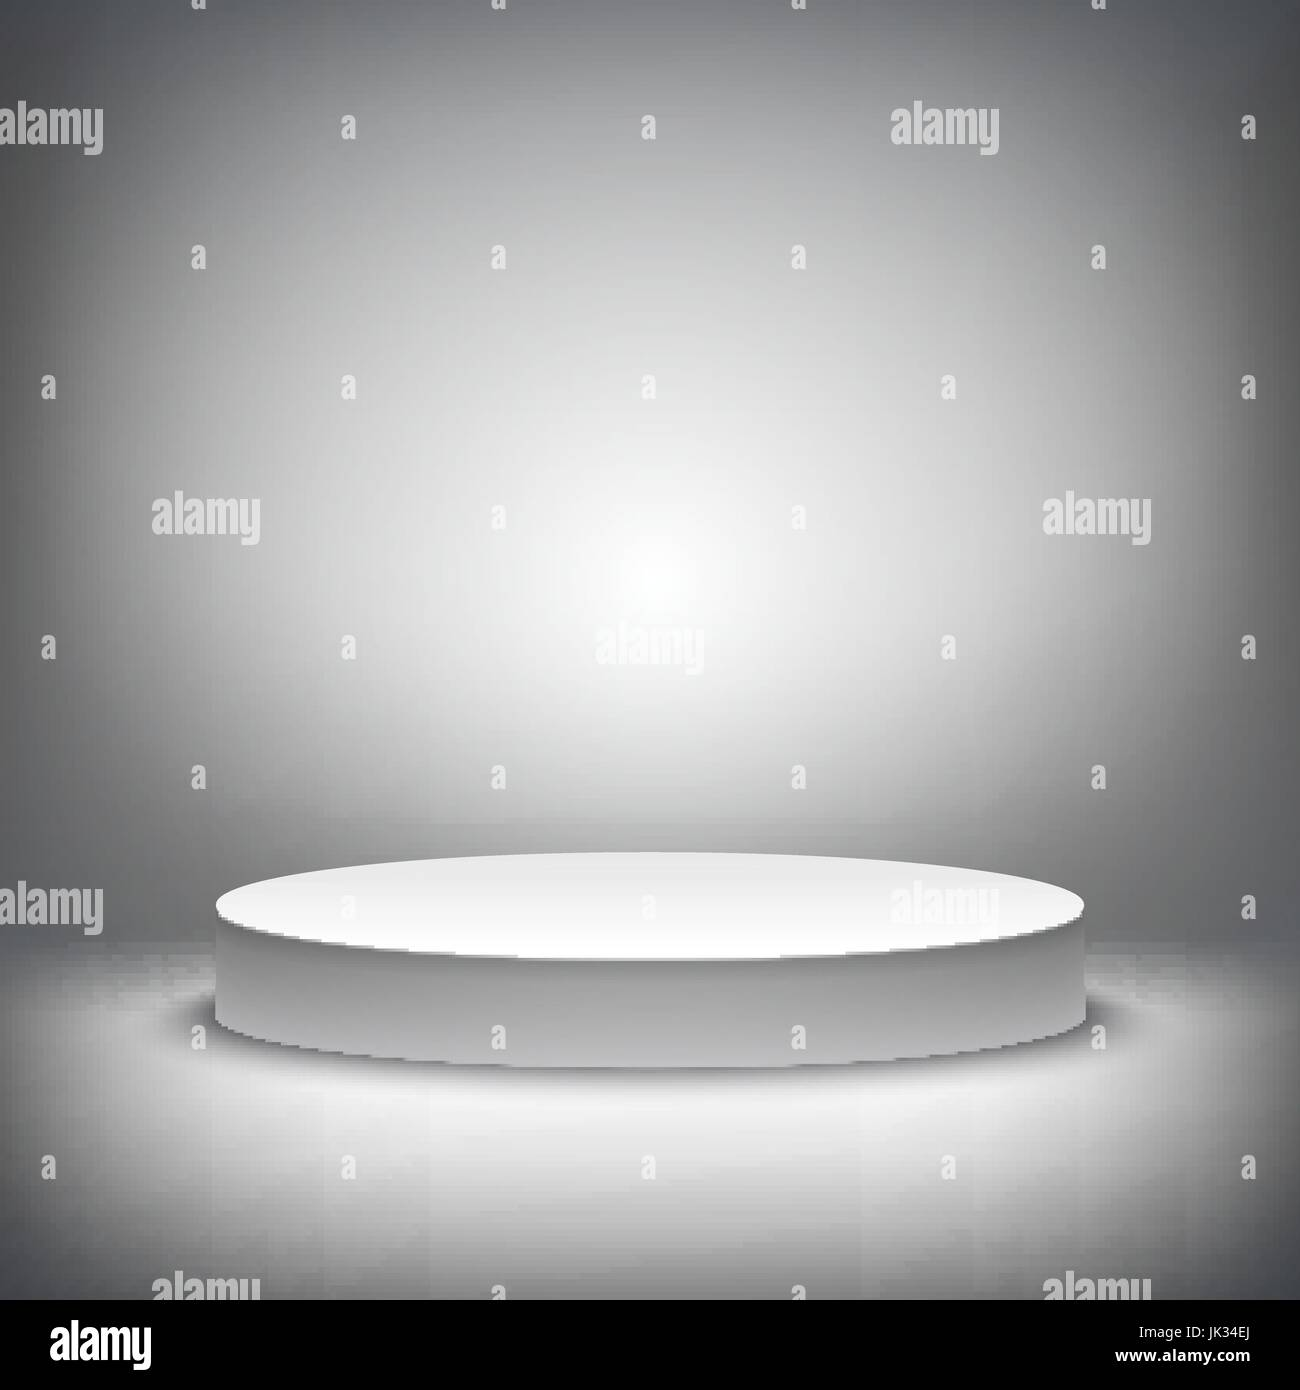 a 3d illustration of blank template layout of white empty musical